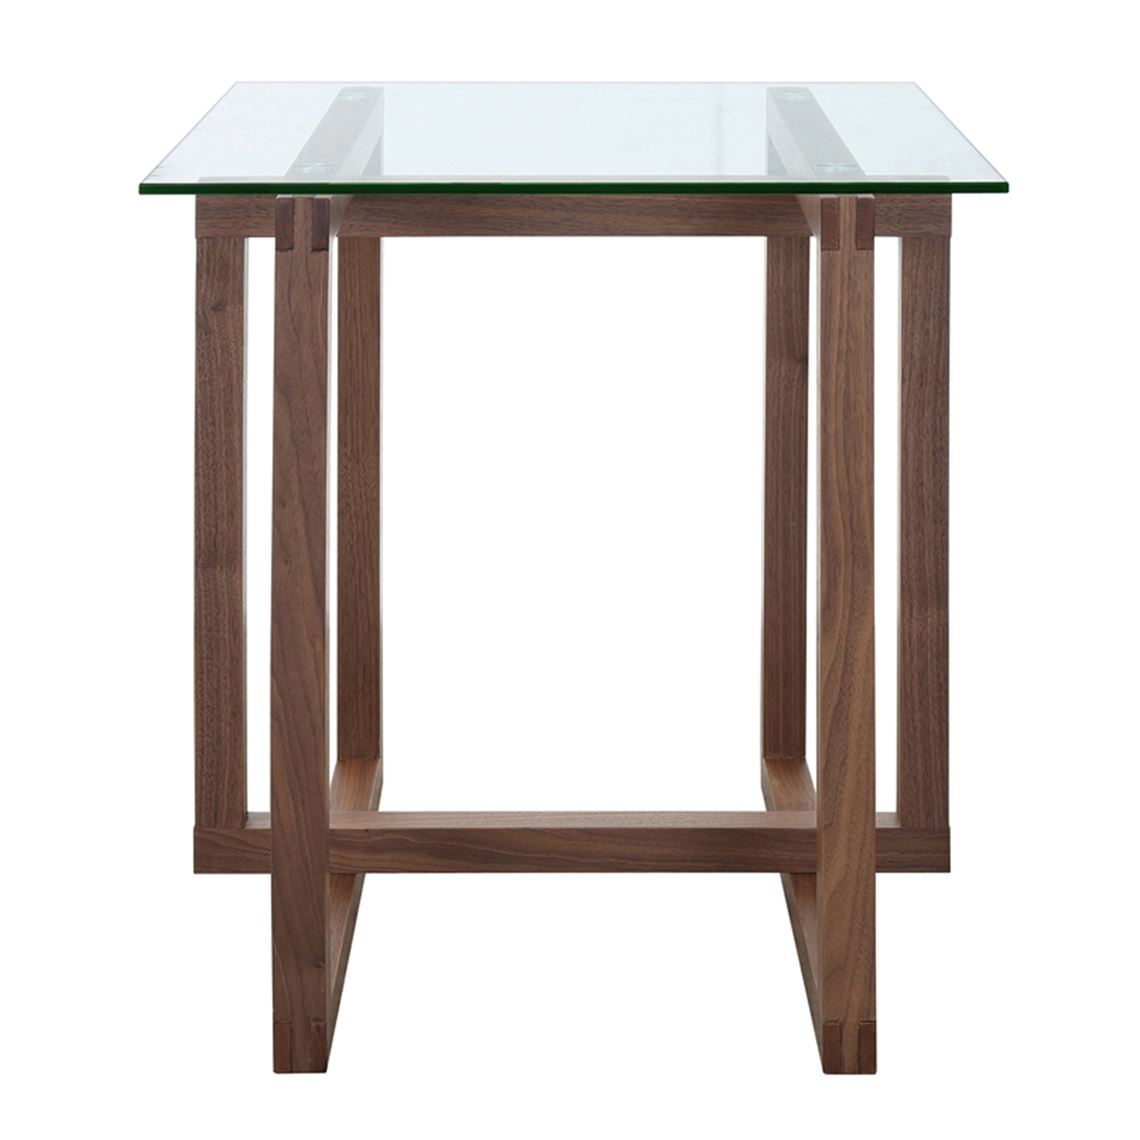 Emerald Green Accent Chair All Tables Coffee Console Side Table Freedom Kyra Gumtree Perth